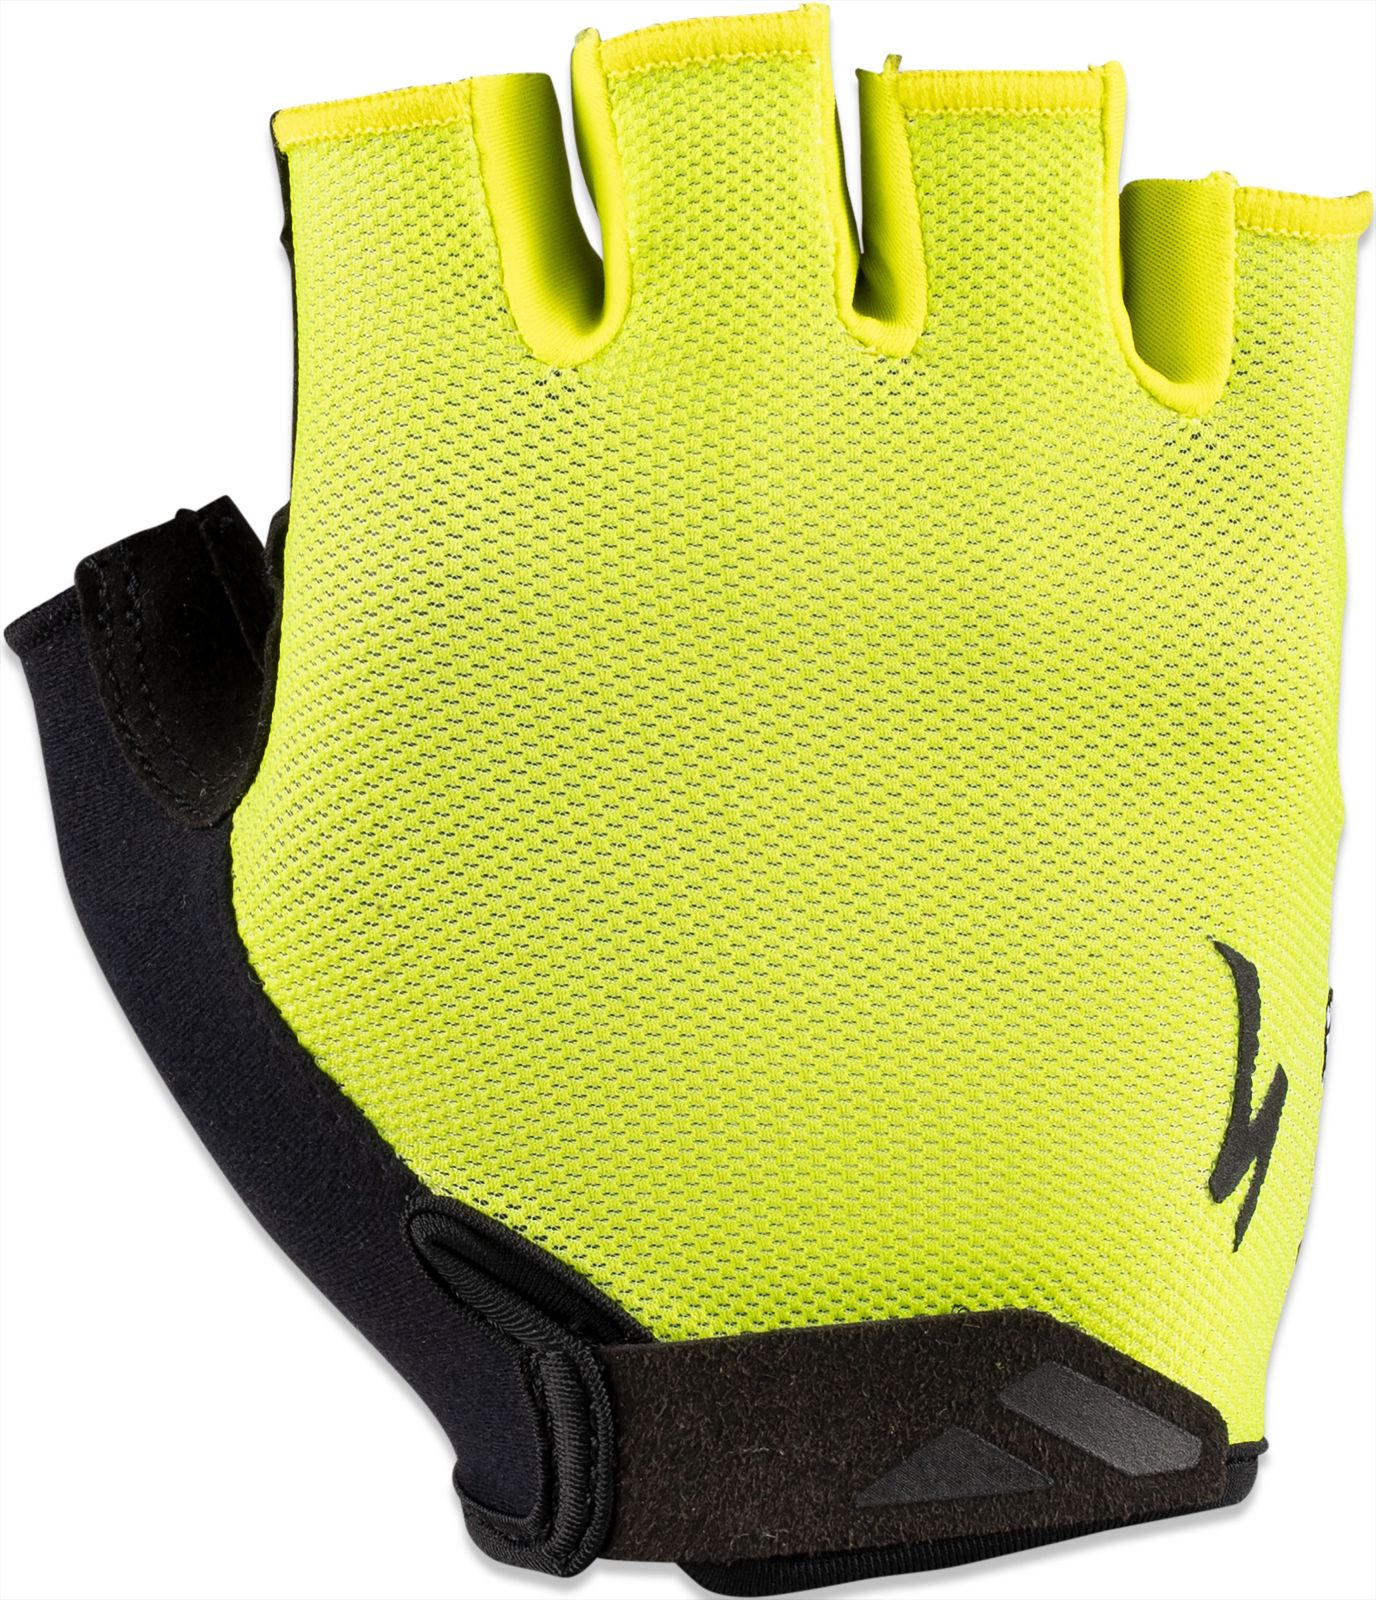 Specialized BG Sport Gel Glove SF - hyper green S